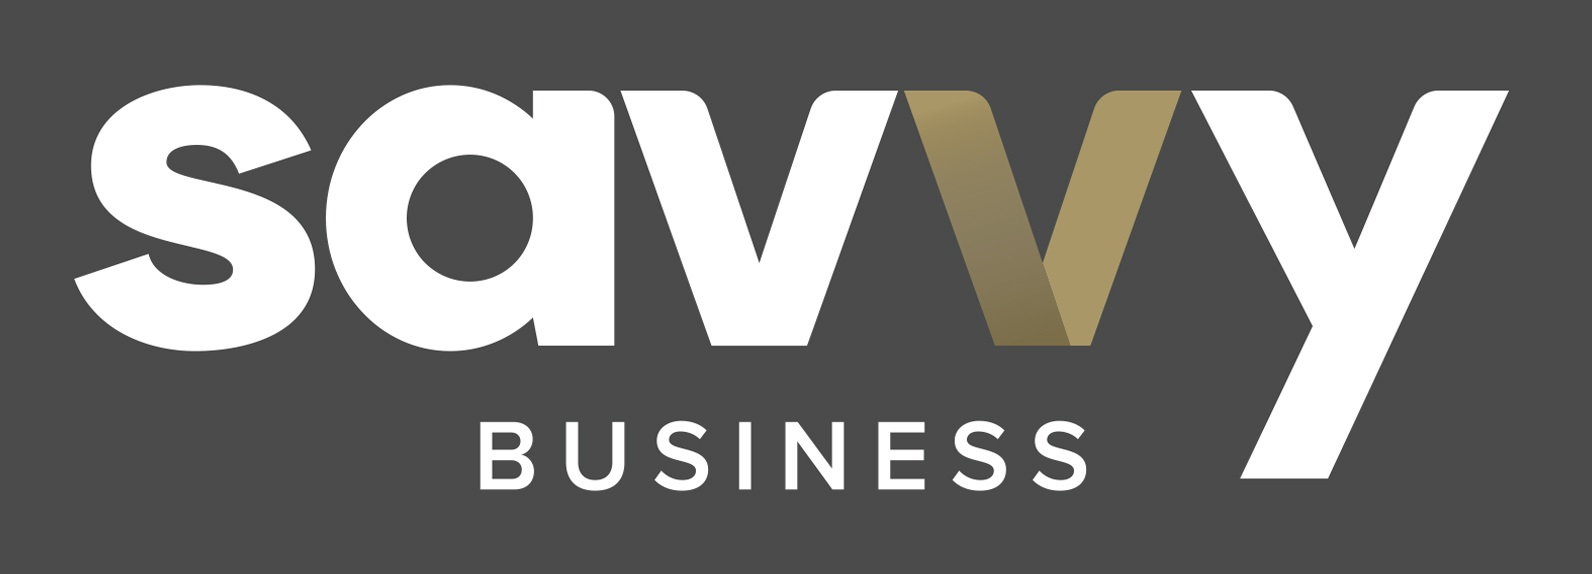 Savvy Business Sales Logo